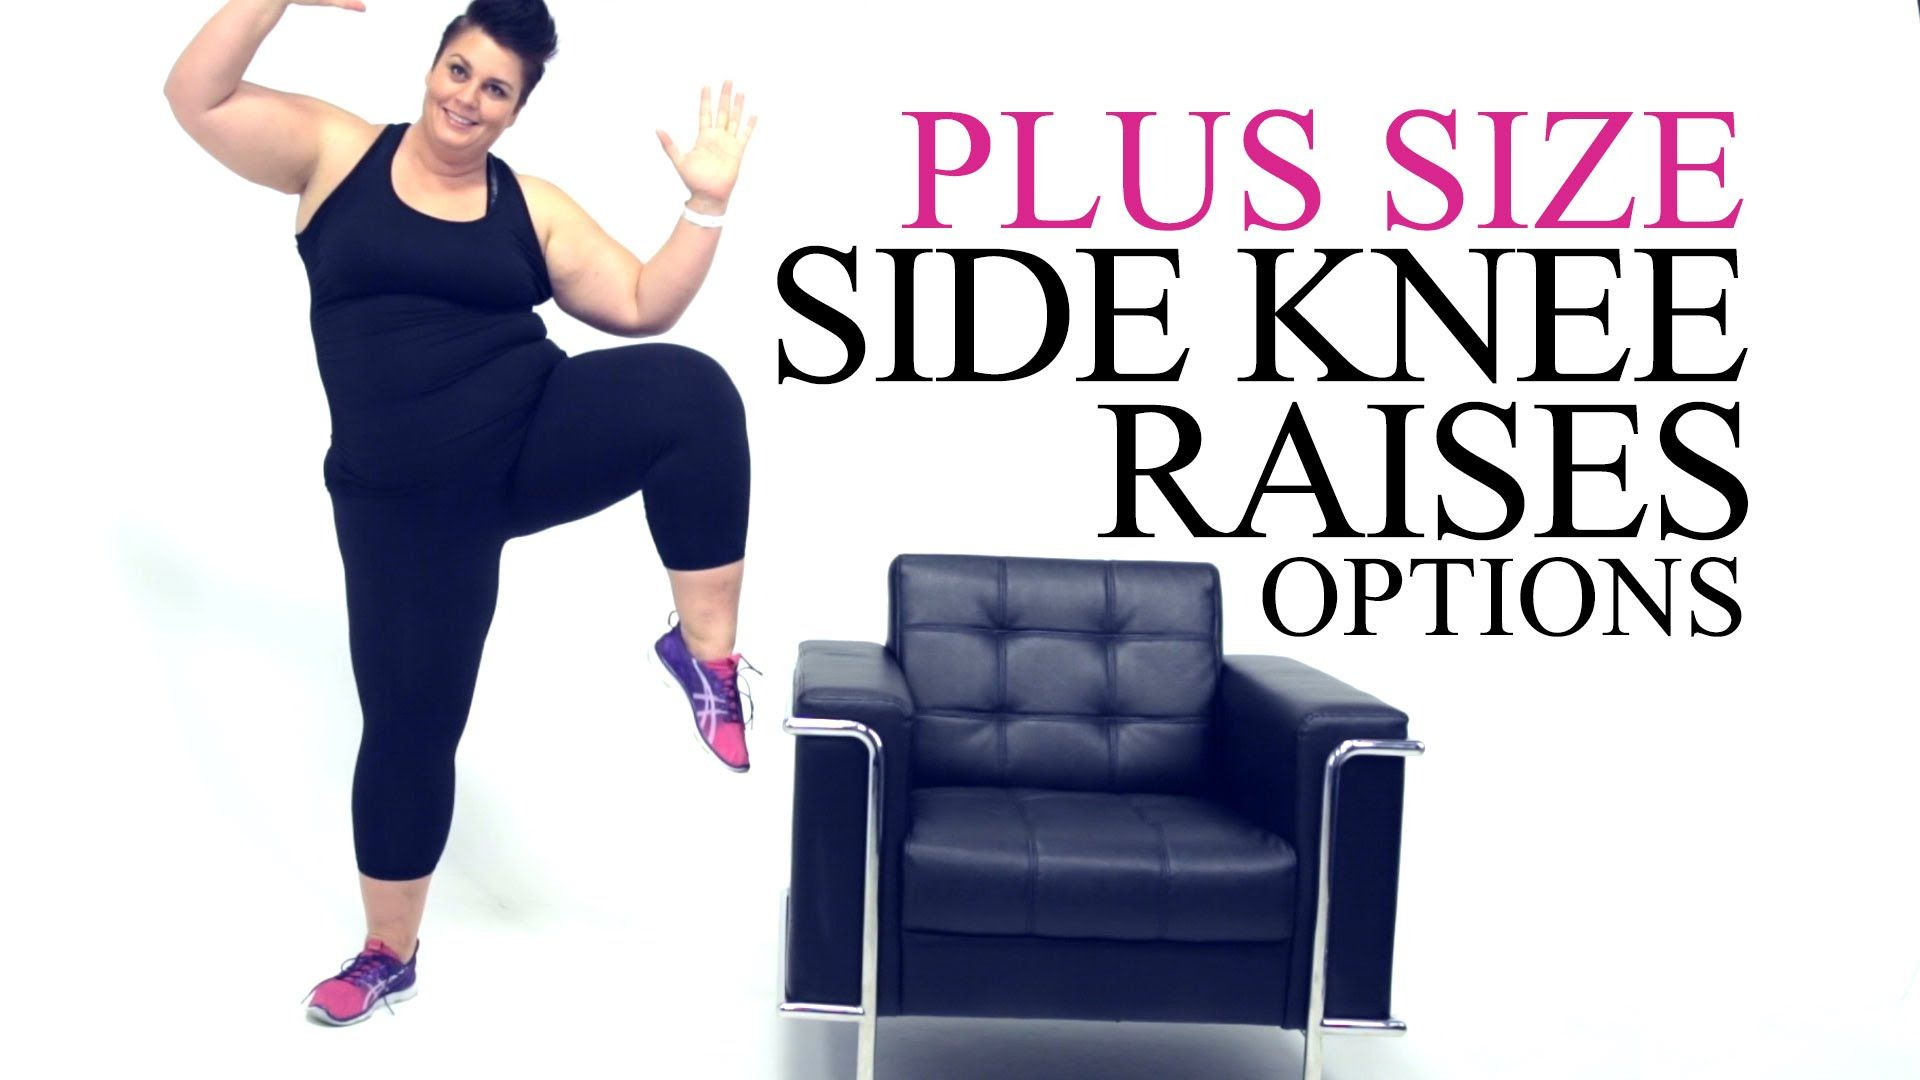 Chair Exercises For Obese Build Your Core Off The Floor Belly Workout Plus Size